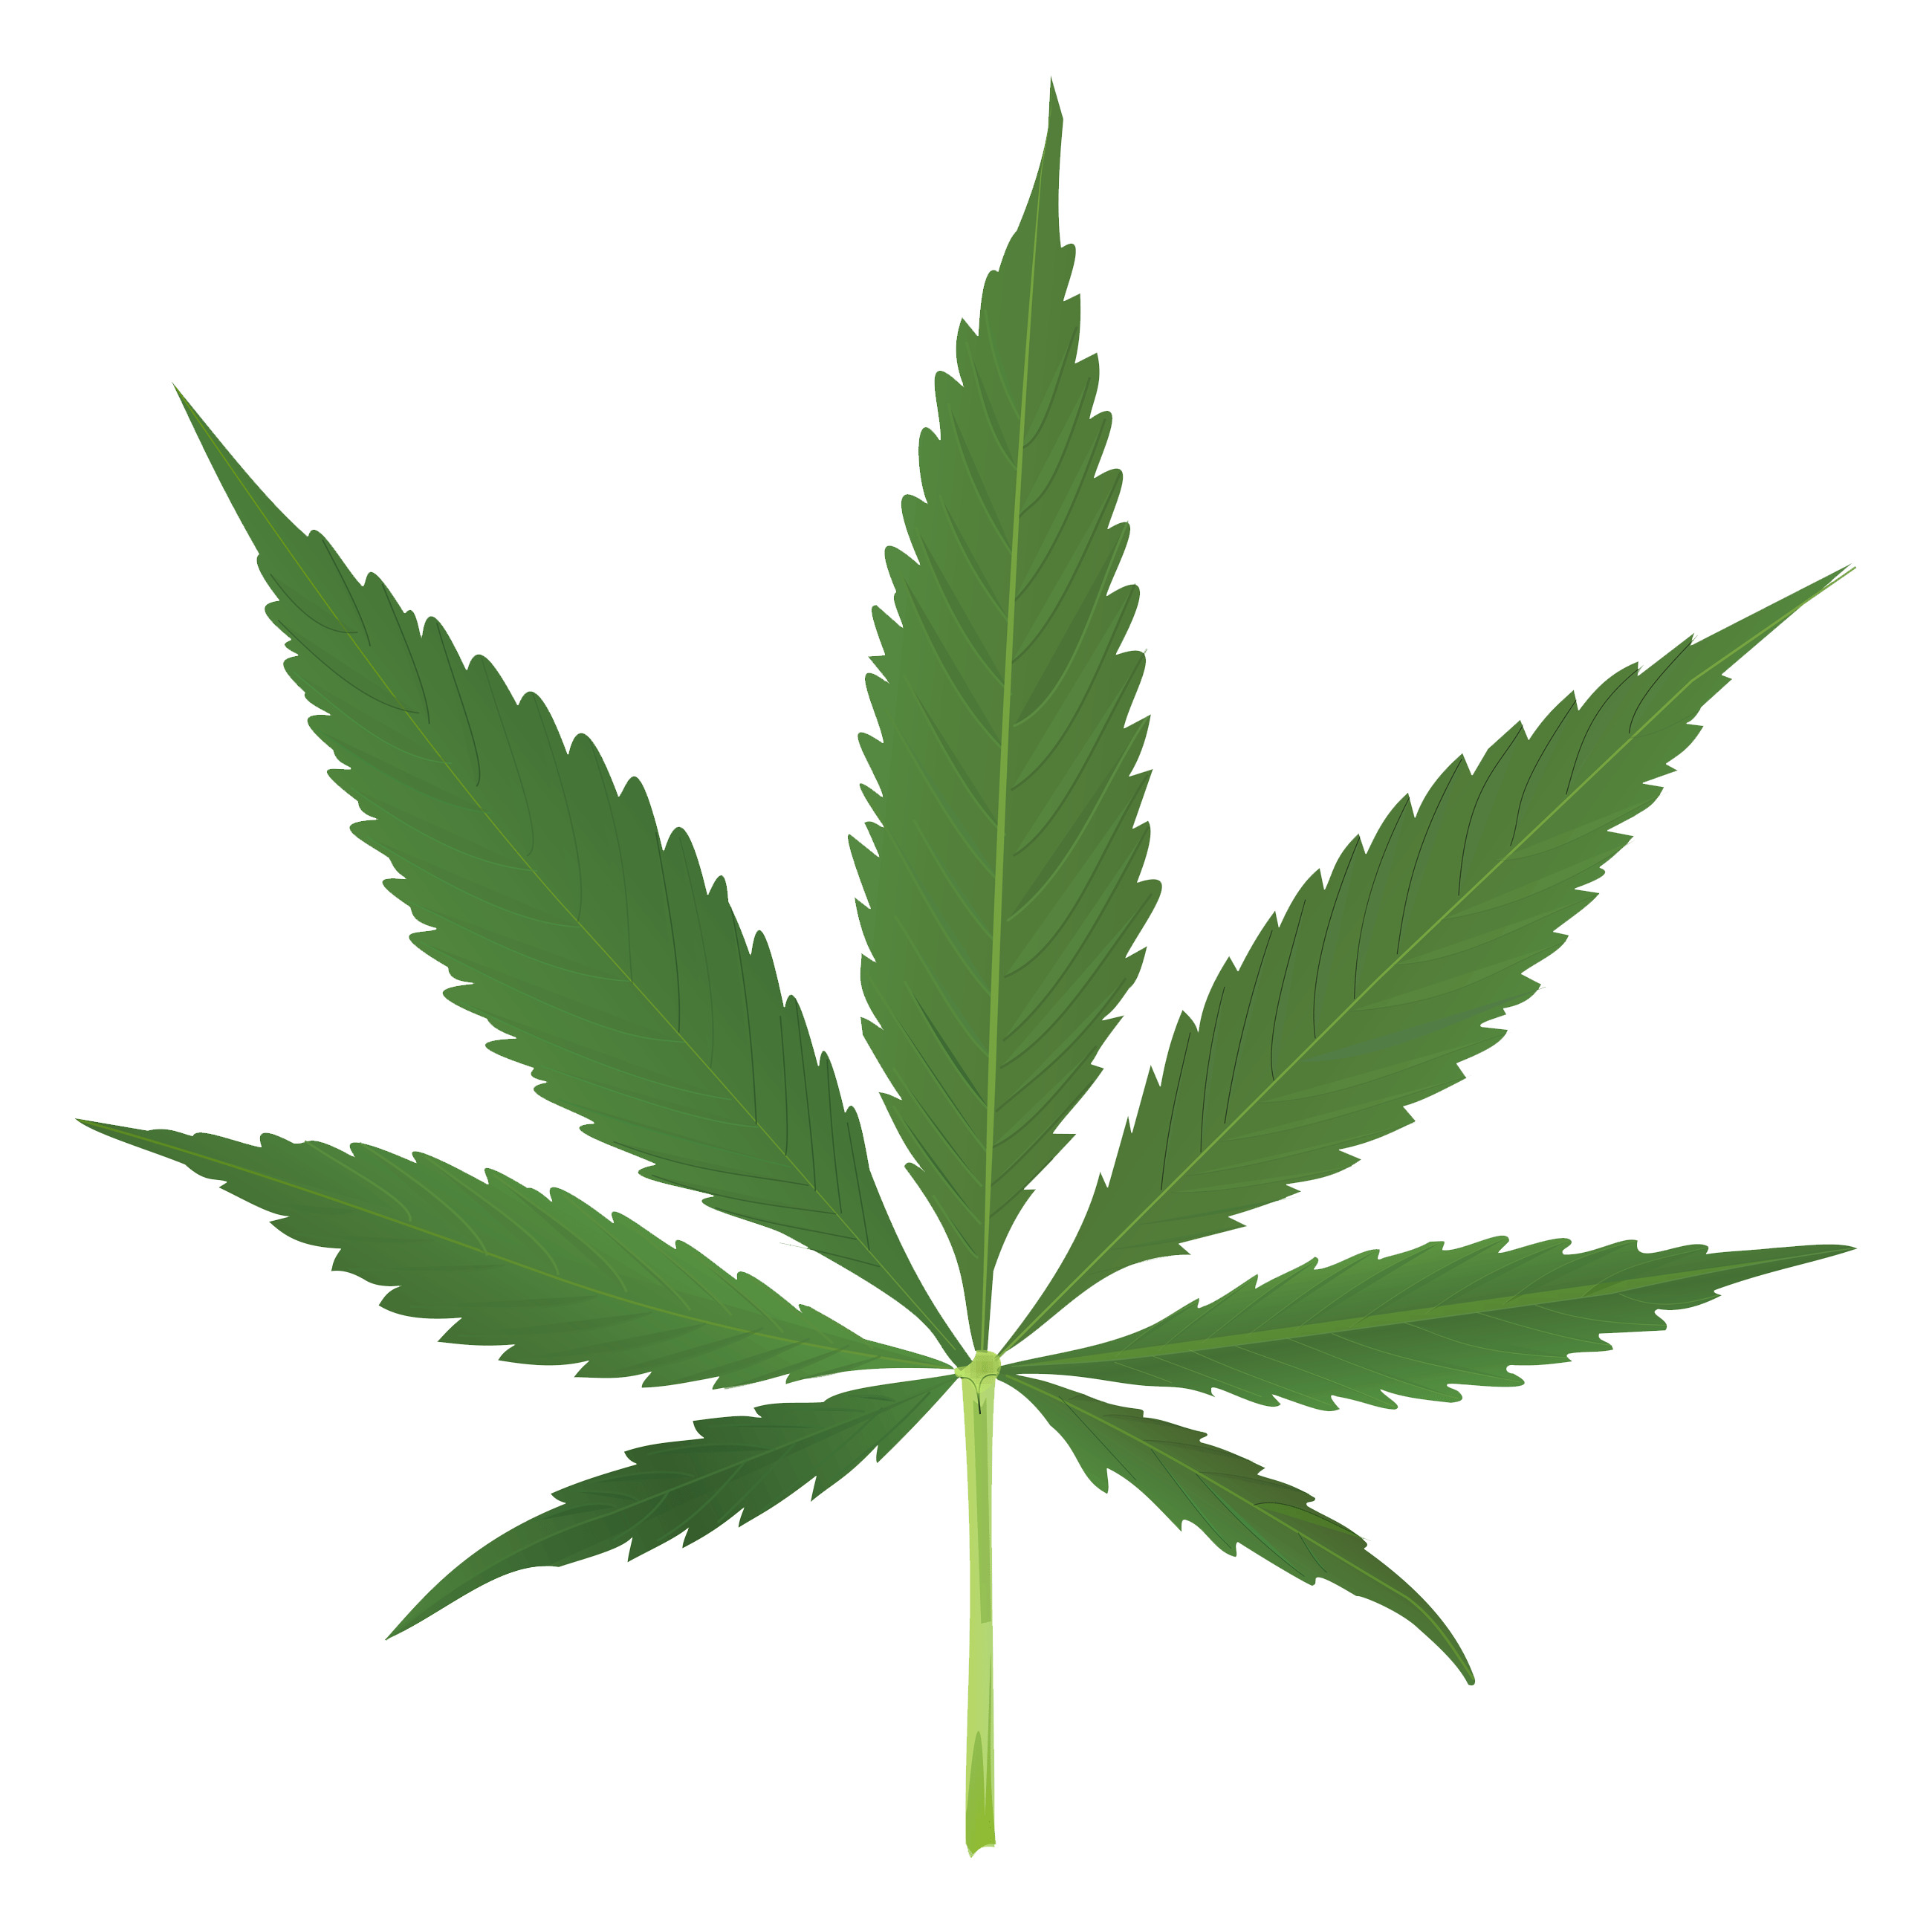 Cannabis Leaf Transparent Background - Weed Png | Free download best Weed Png on ClipArtMag.com